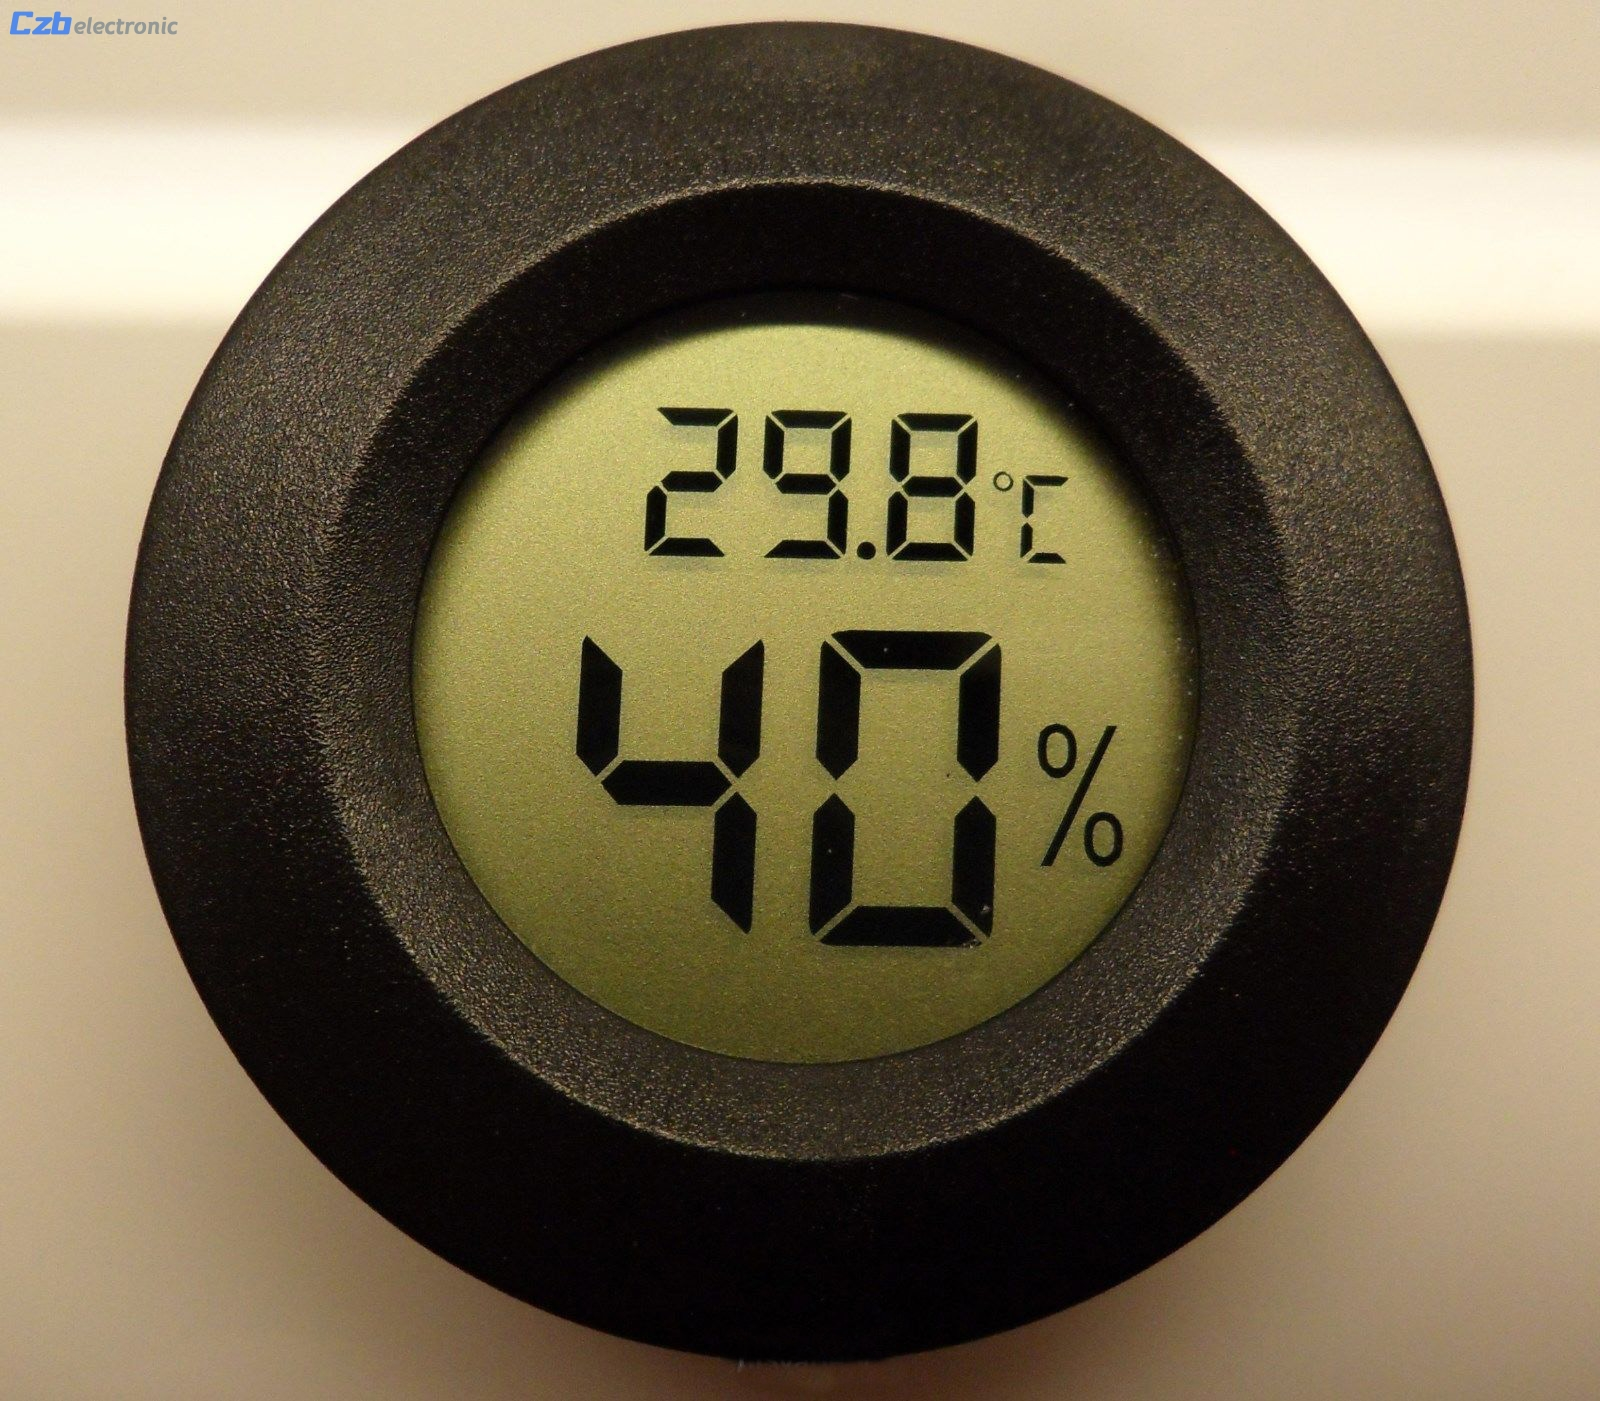 E74 Digital Cigar Humidor Hygrometer Thermometer Round Black Face